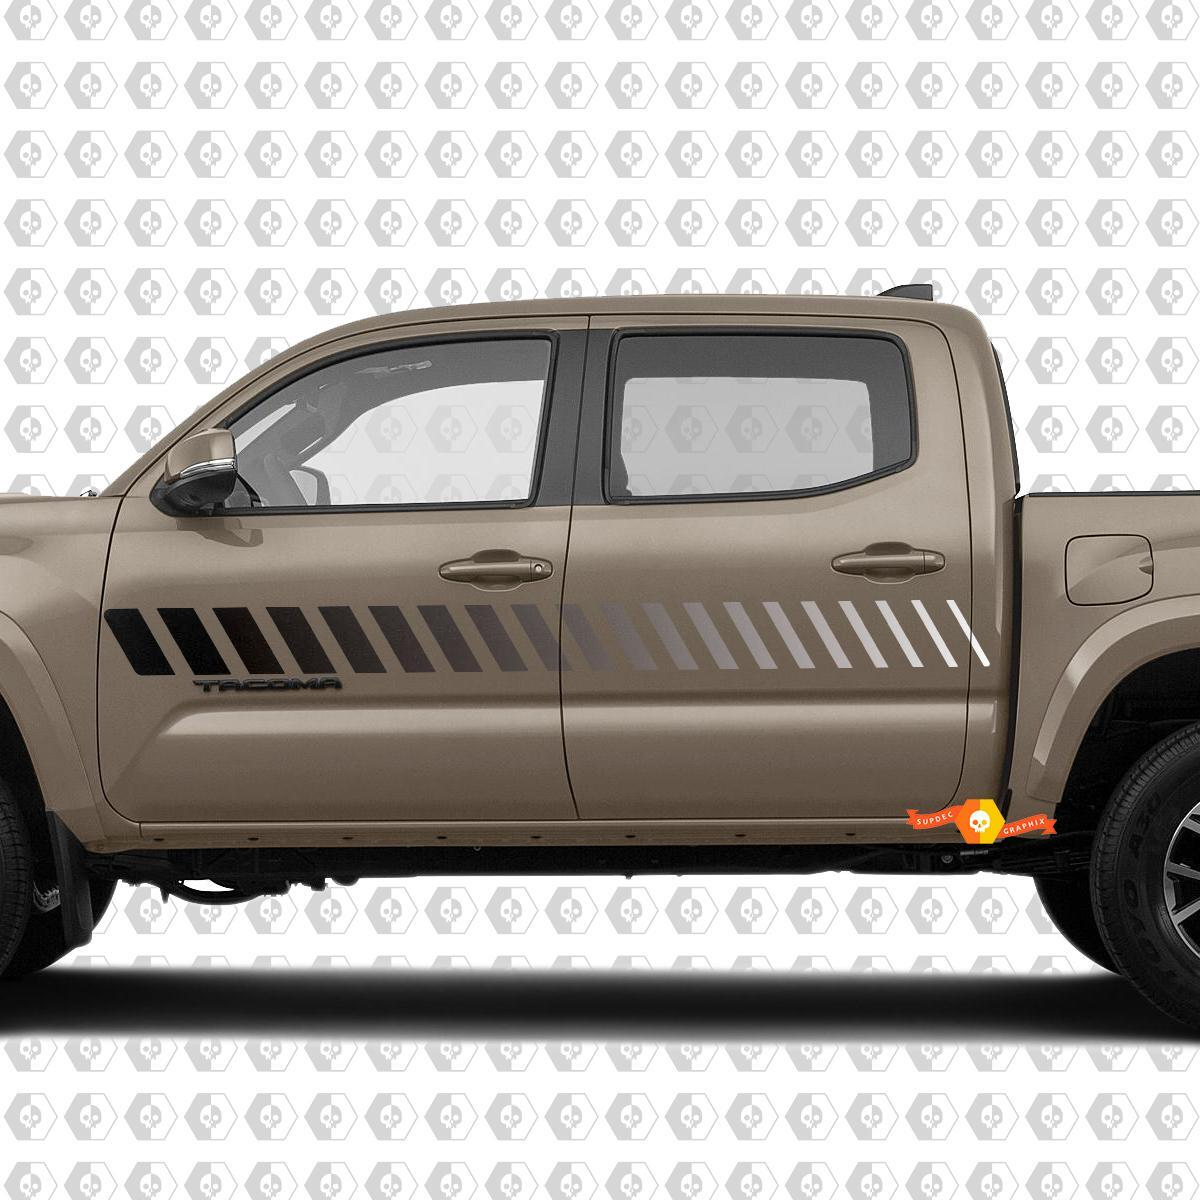 Toyota Tacoma Side Stripe Kit Retro Vintage 80s Monochrome Decals Graphics 2016 2017 2018 2019 2020